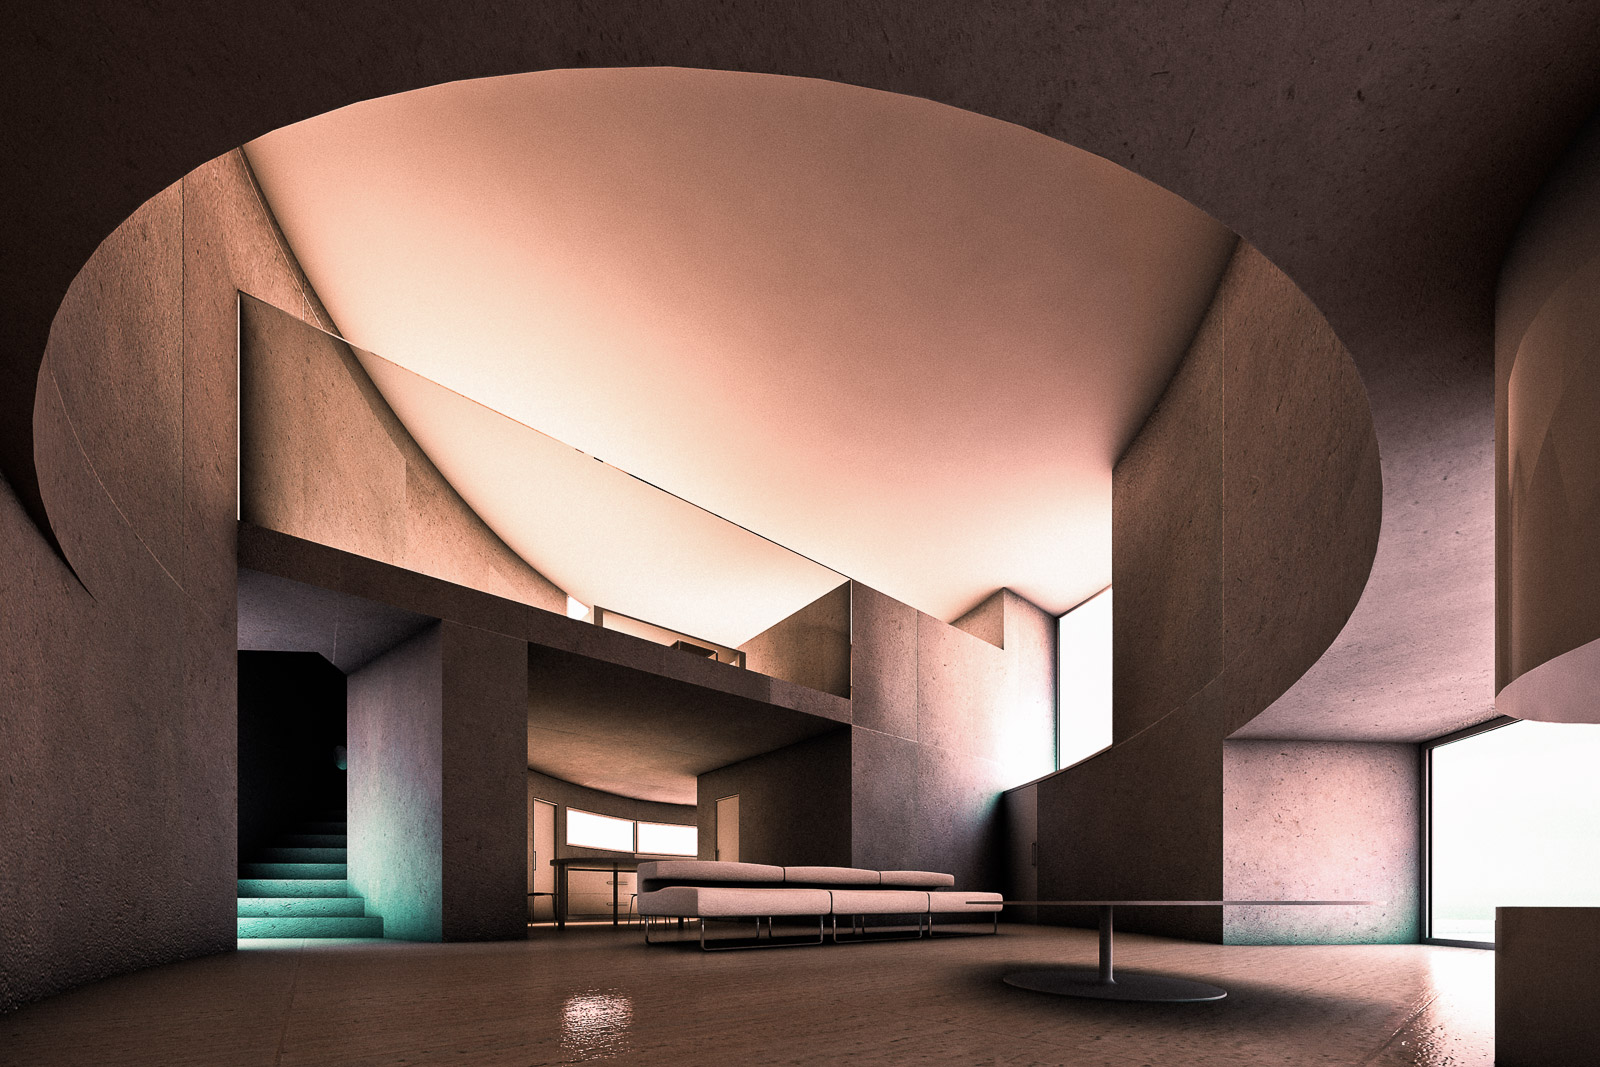 Antonino Cardillo, Ellipse 1501 House, Rome, 2007. CGI: Antonino Cardillo